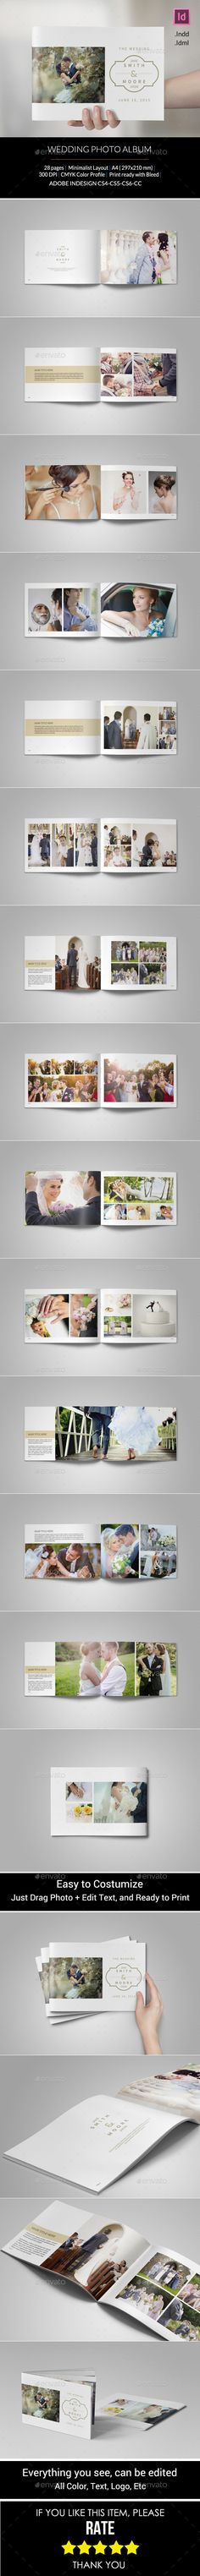 Simple Wedding Photo Album - Photo Albums Print Templates